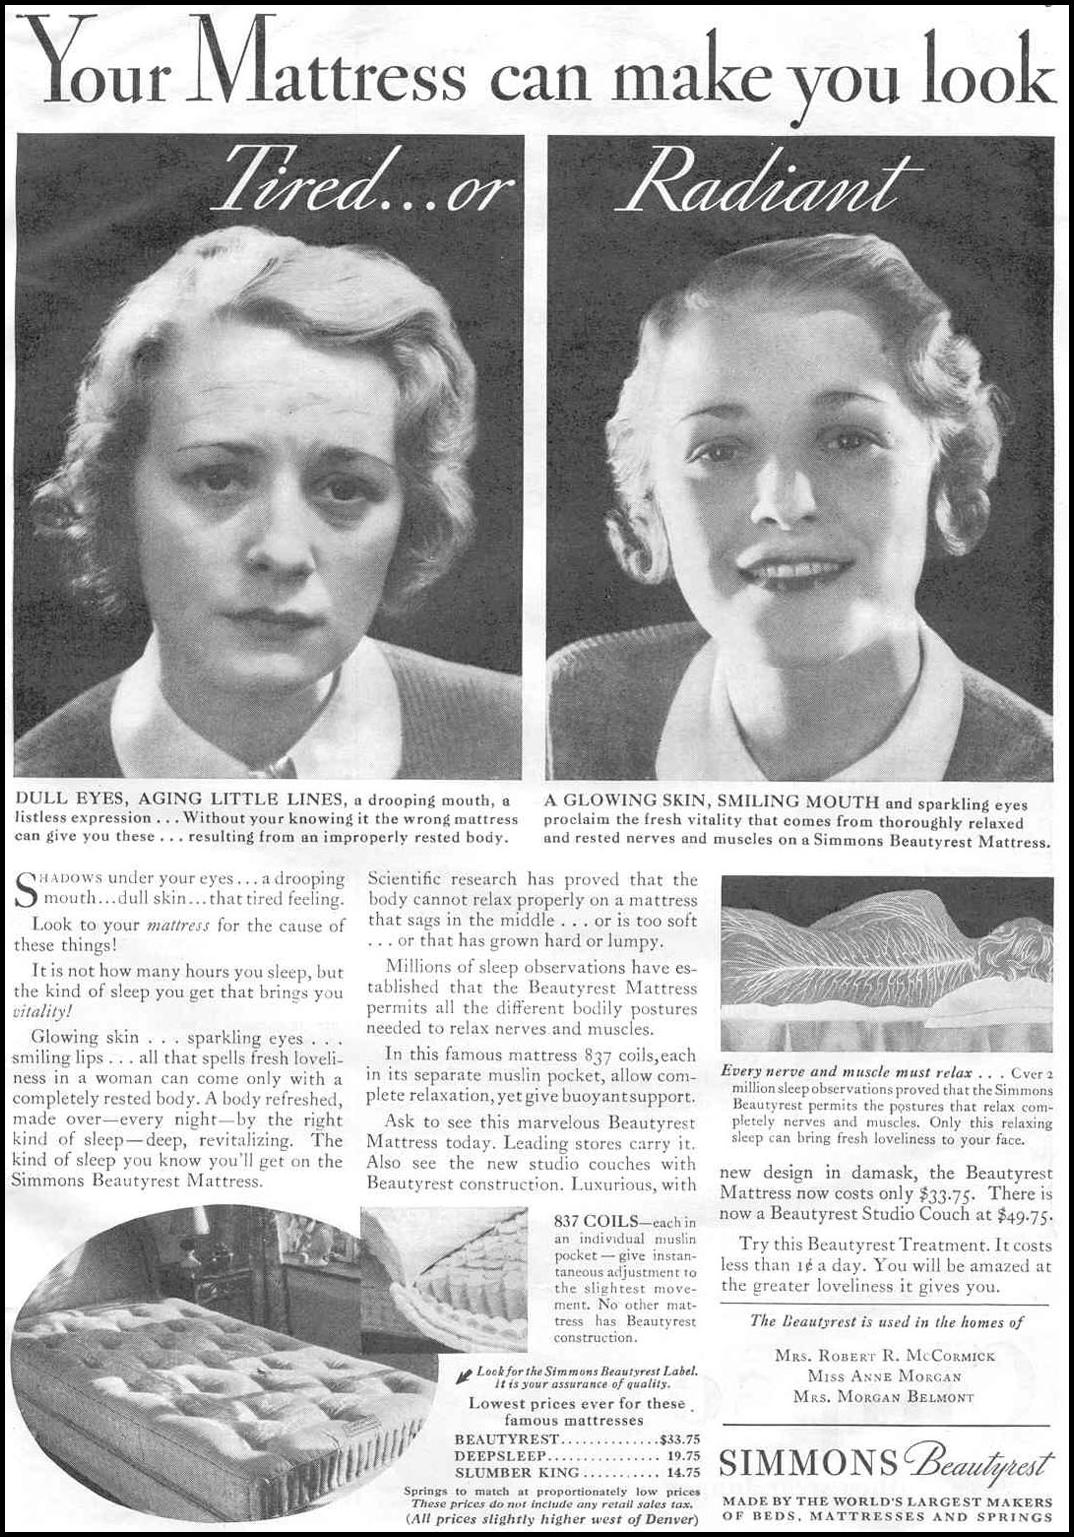 SIMMONS BEAUTYREST MATTRESS GOOD HOUSEKEEPING 06/01/1933 p. 125